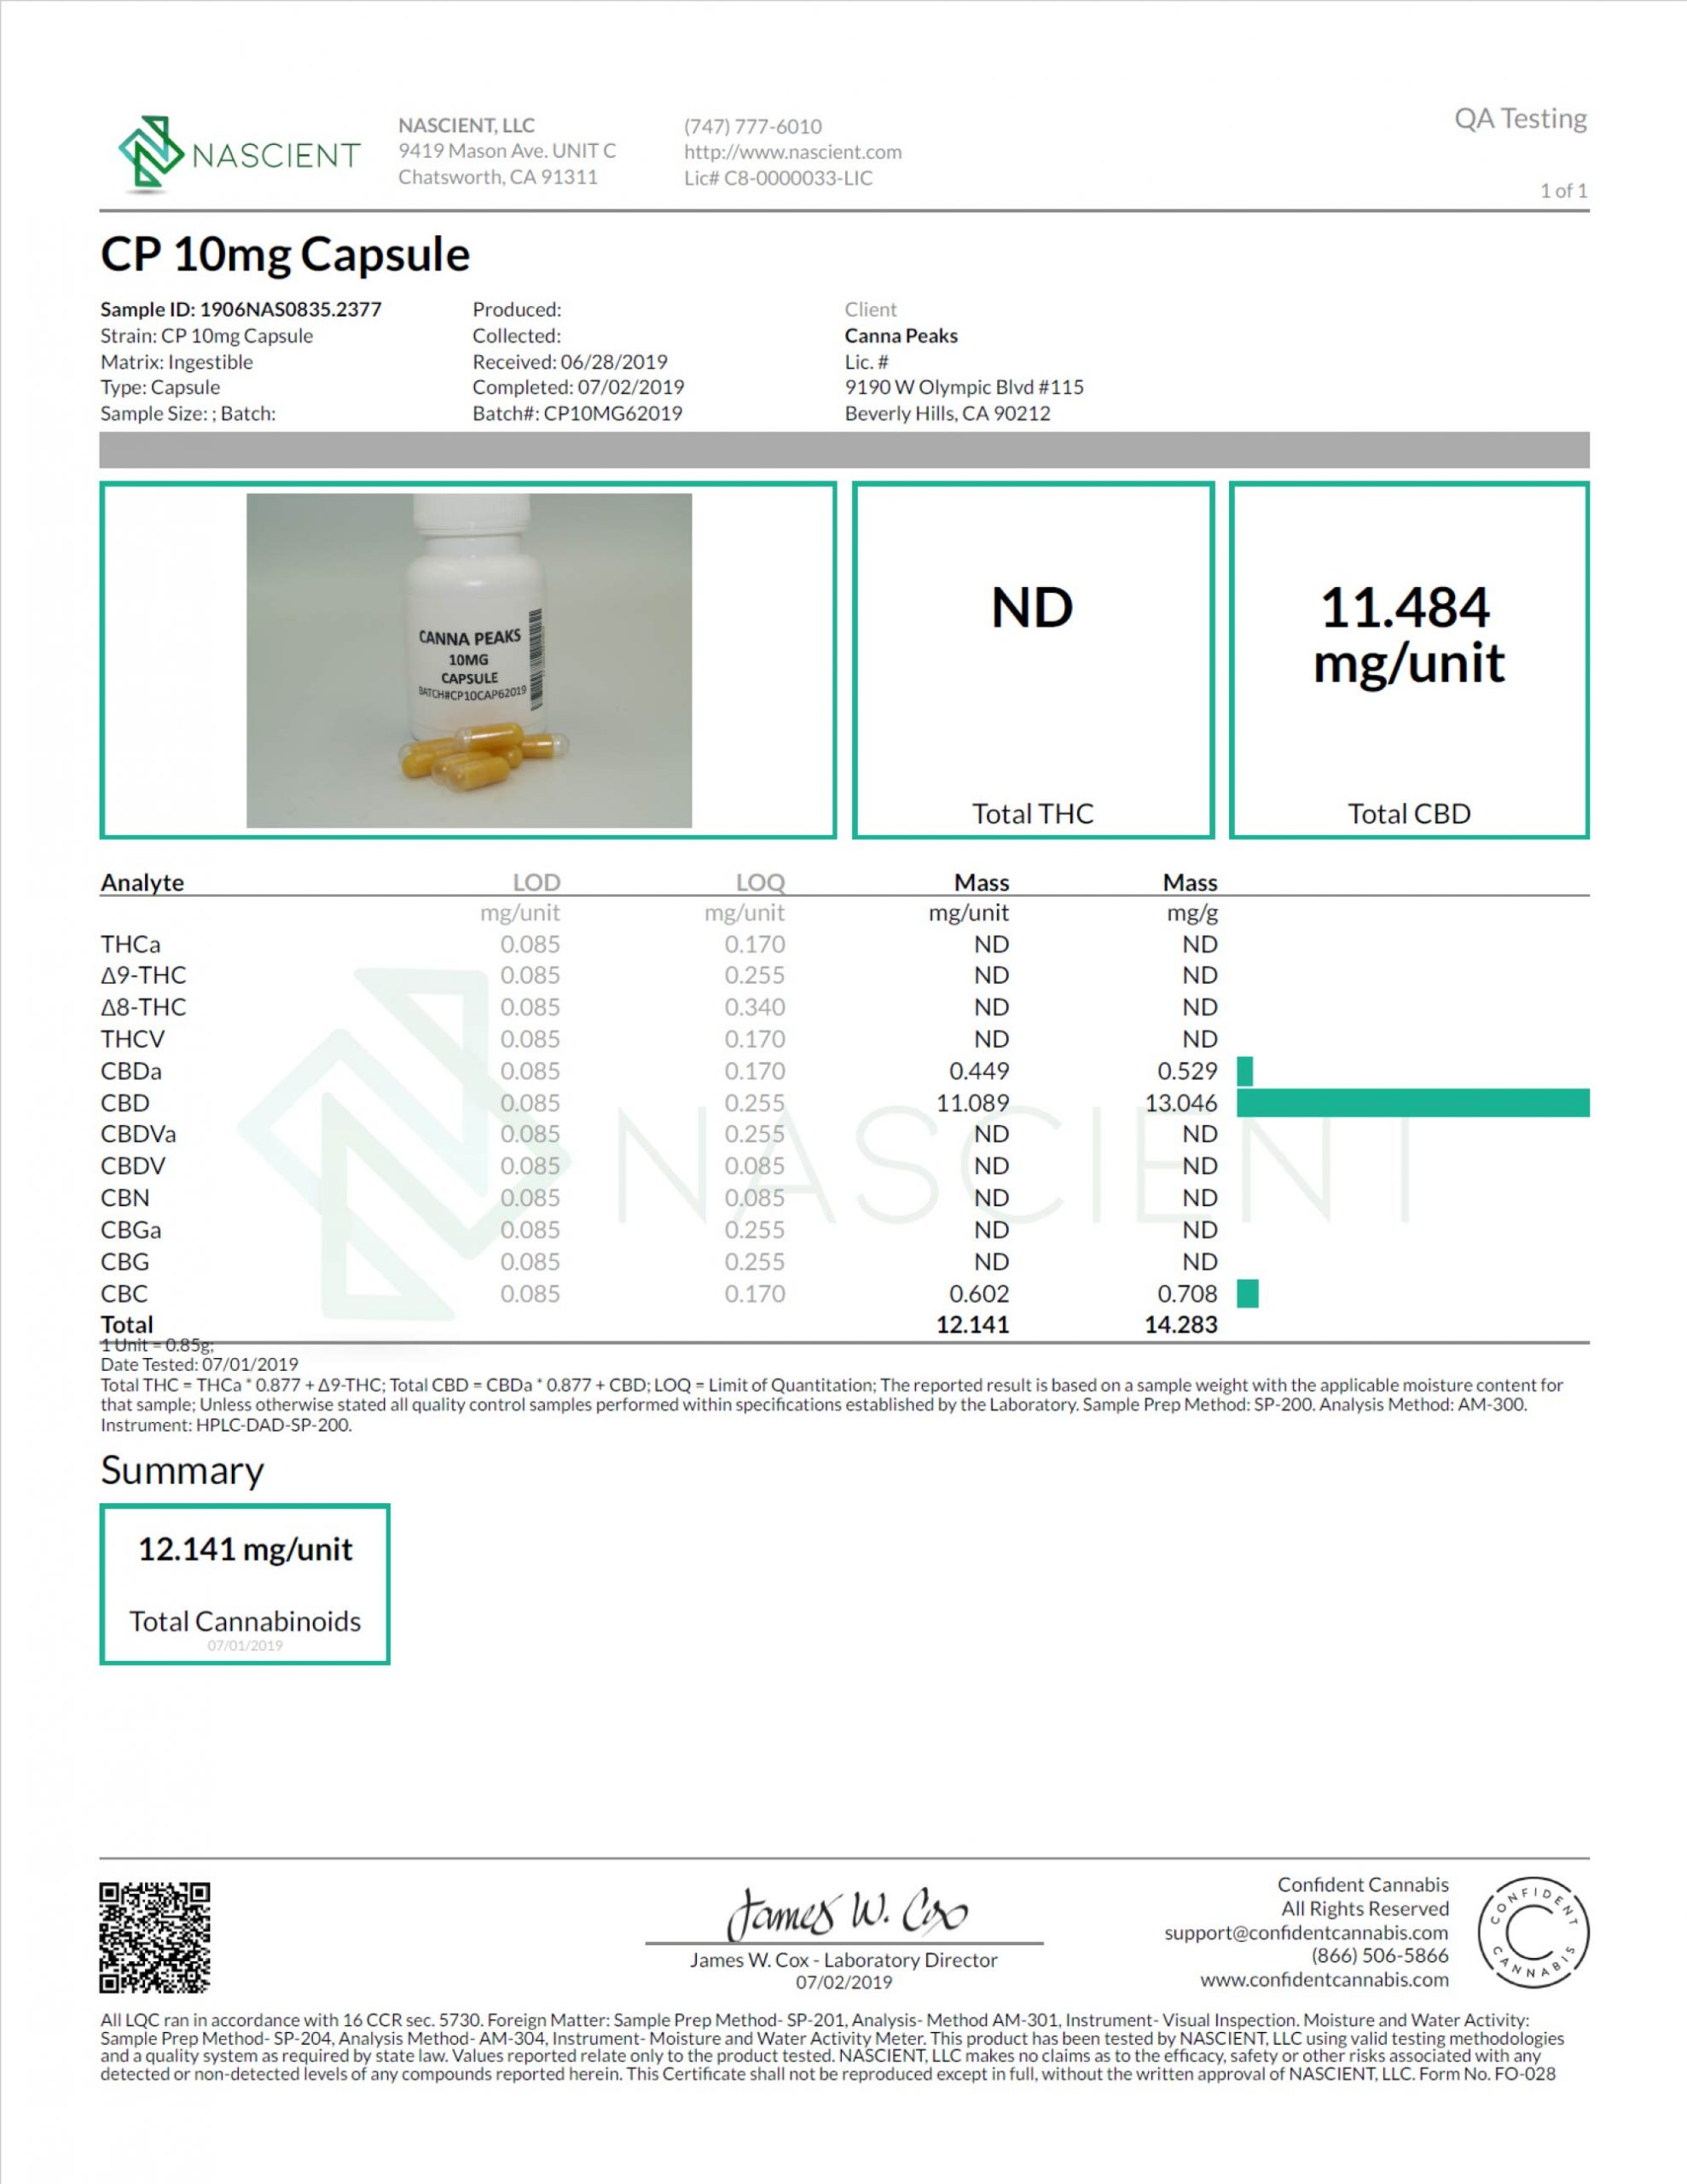 Nascient Lab CBD Test Results for Canna Peaks Capsules